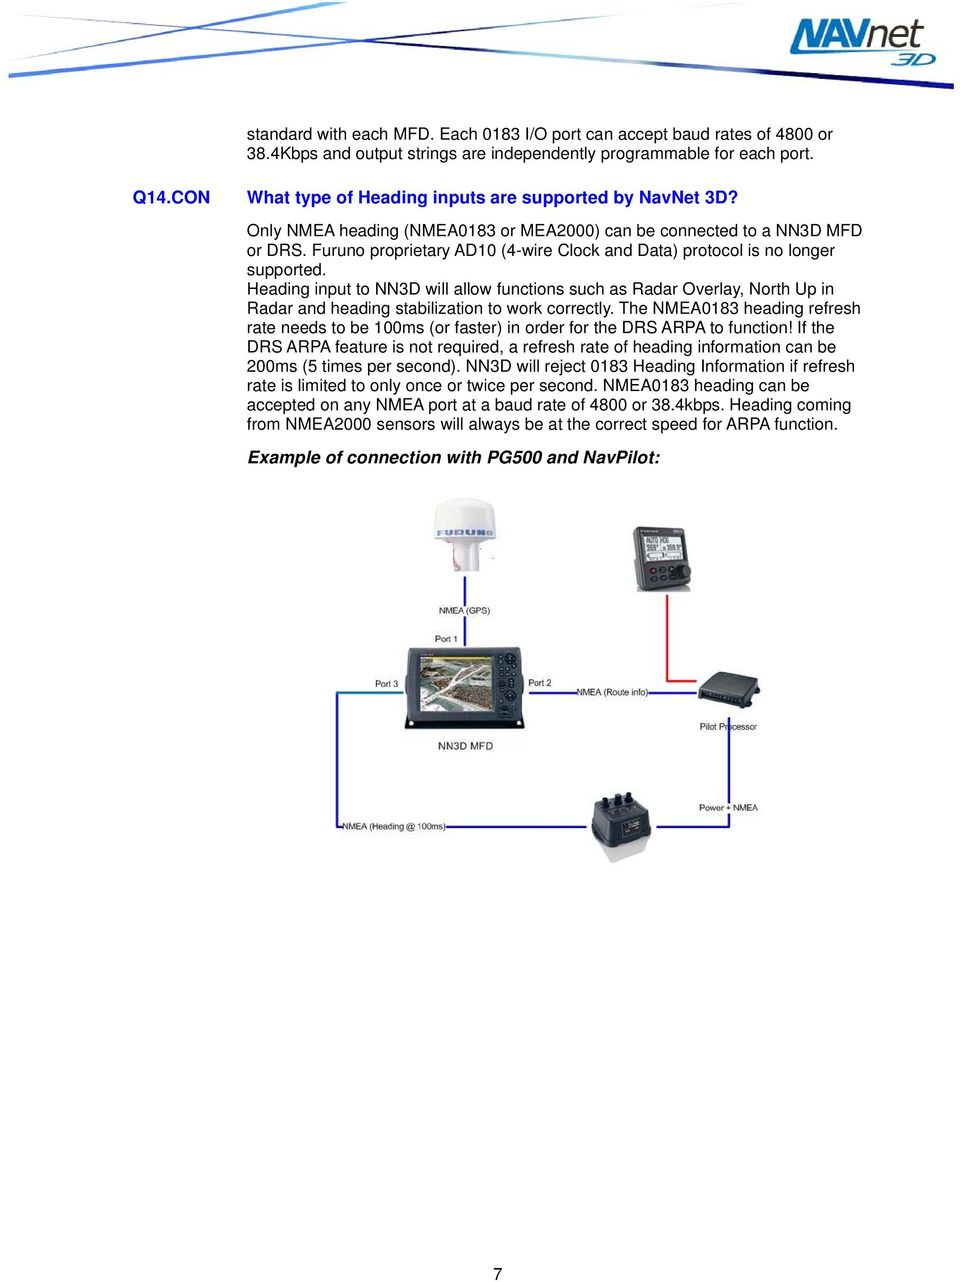 Navnet 3d Faq V20 Furuno Usa Inc Table Of Contents Pdf Wiring Diagram Proprietary Ad10 4 Wire Clock And Data Protocol Is No Longer Supported